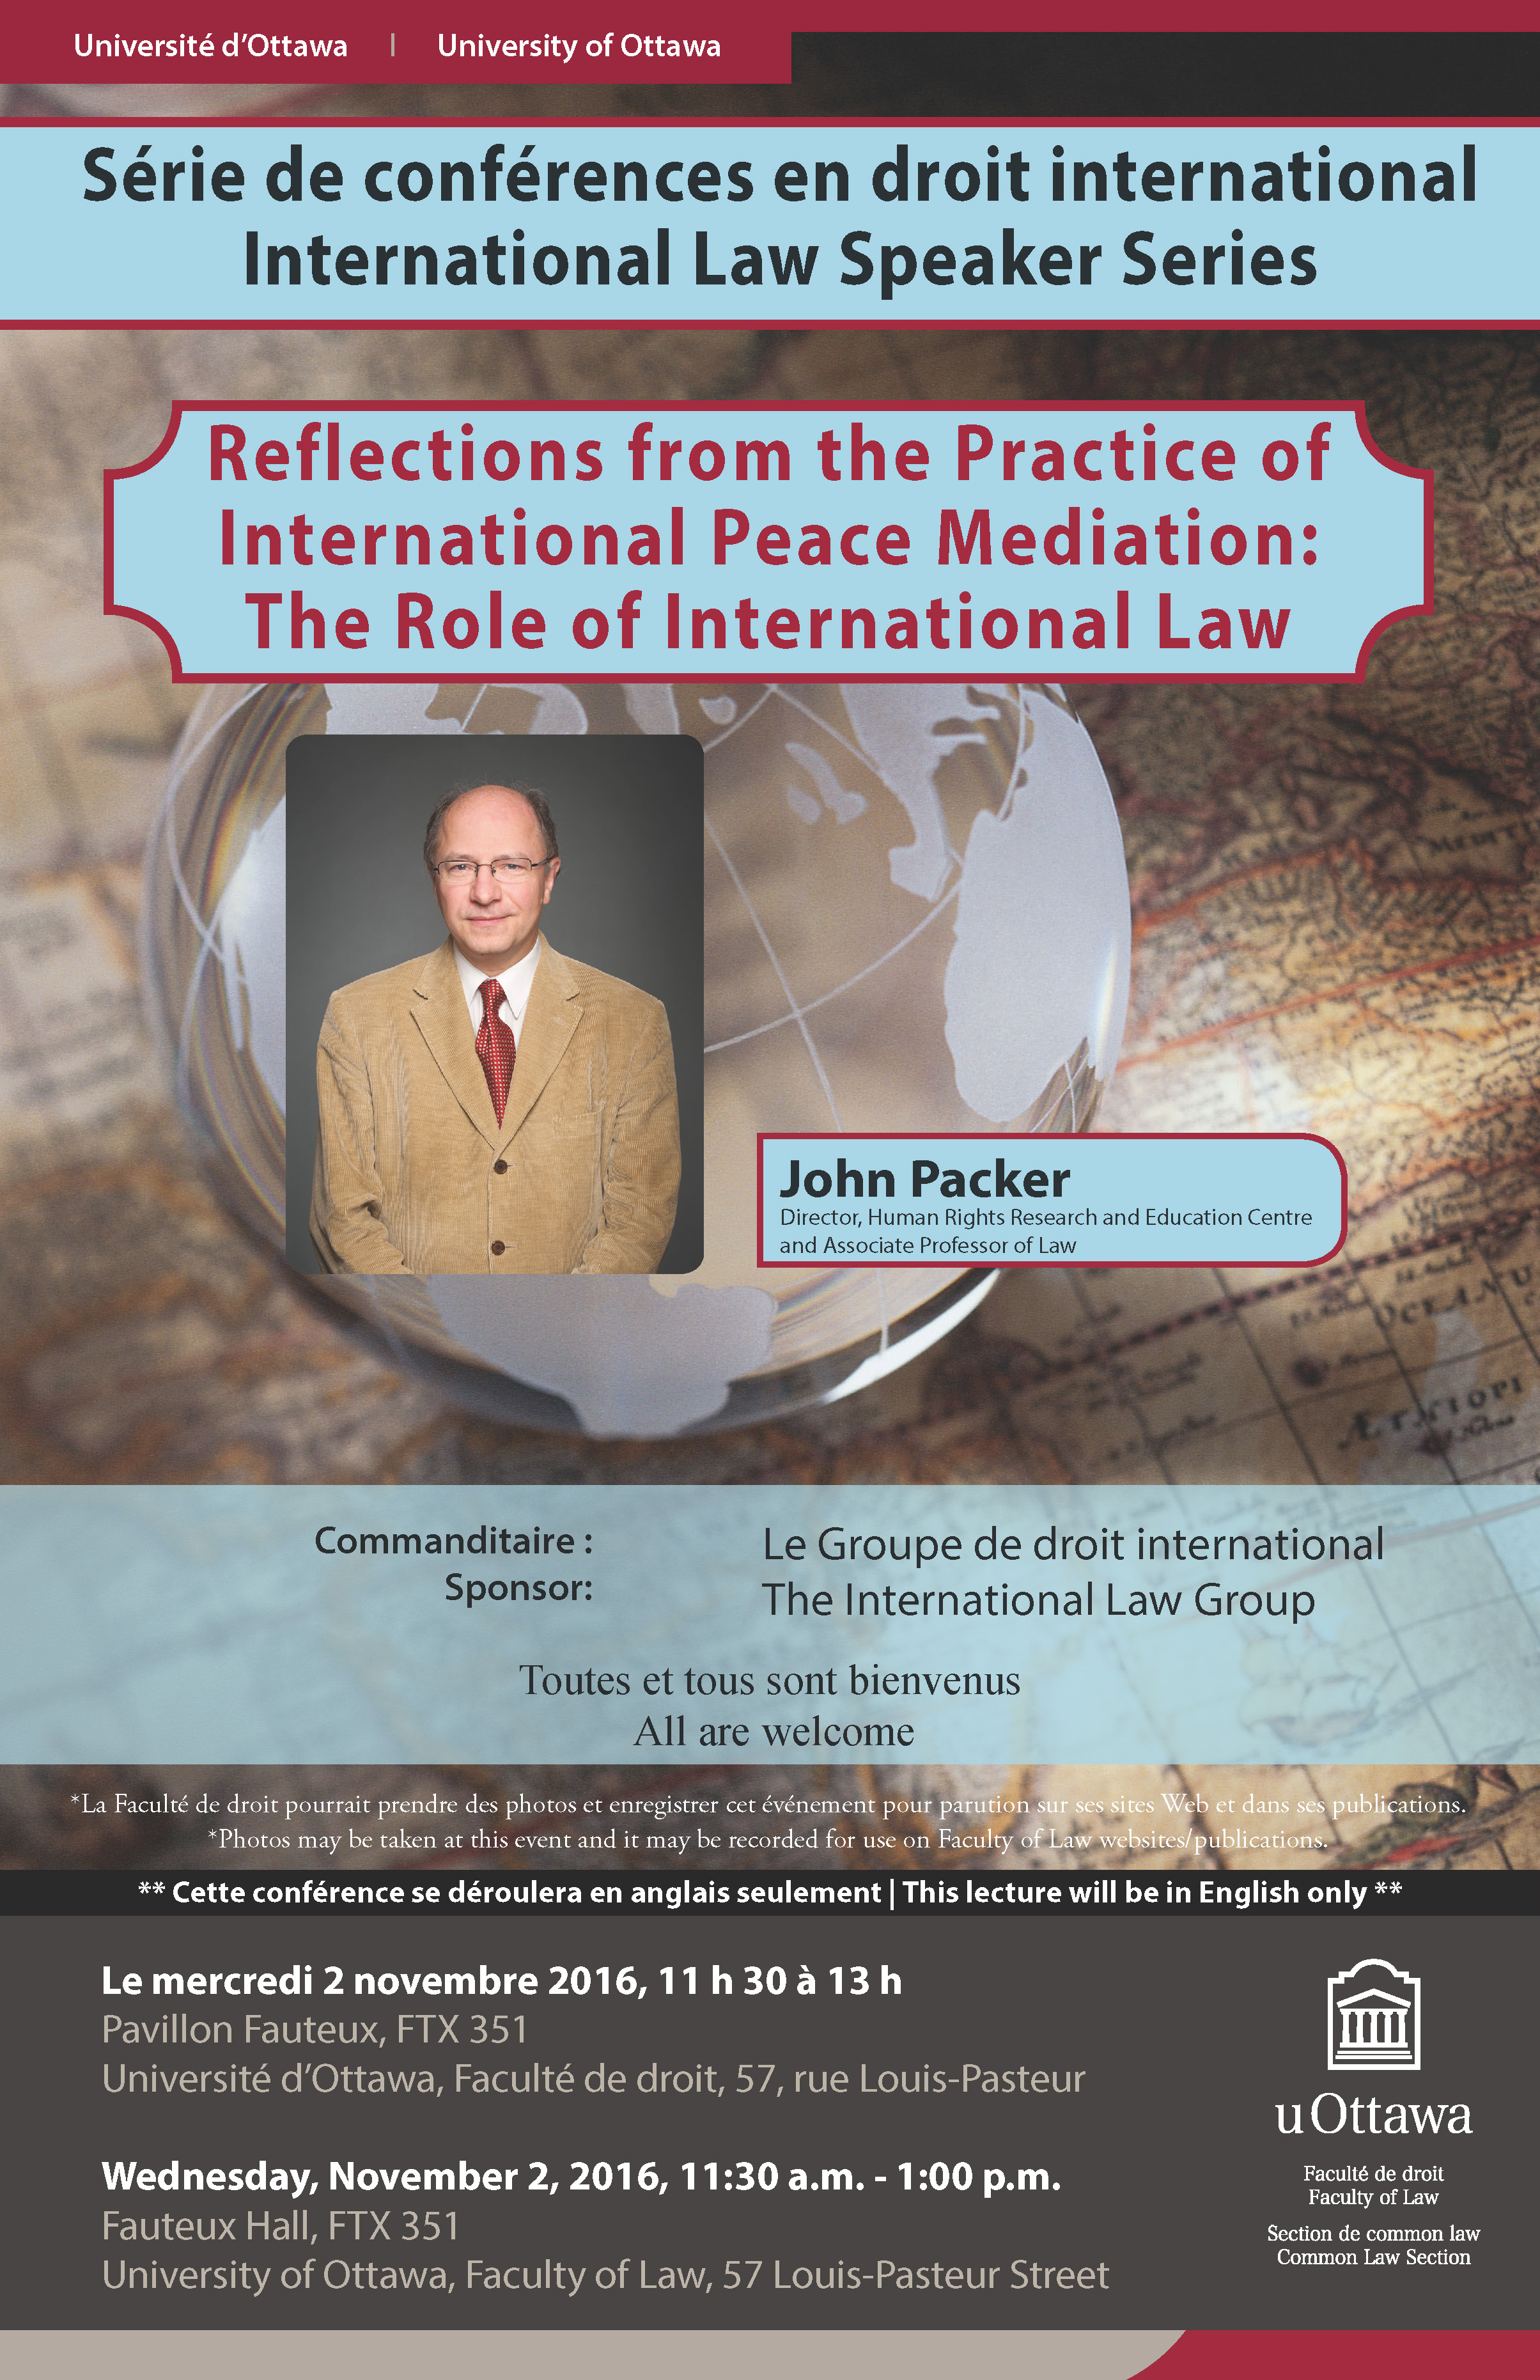 The Role of International Law by John Packer